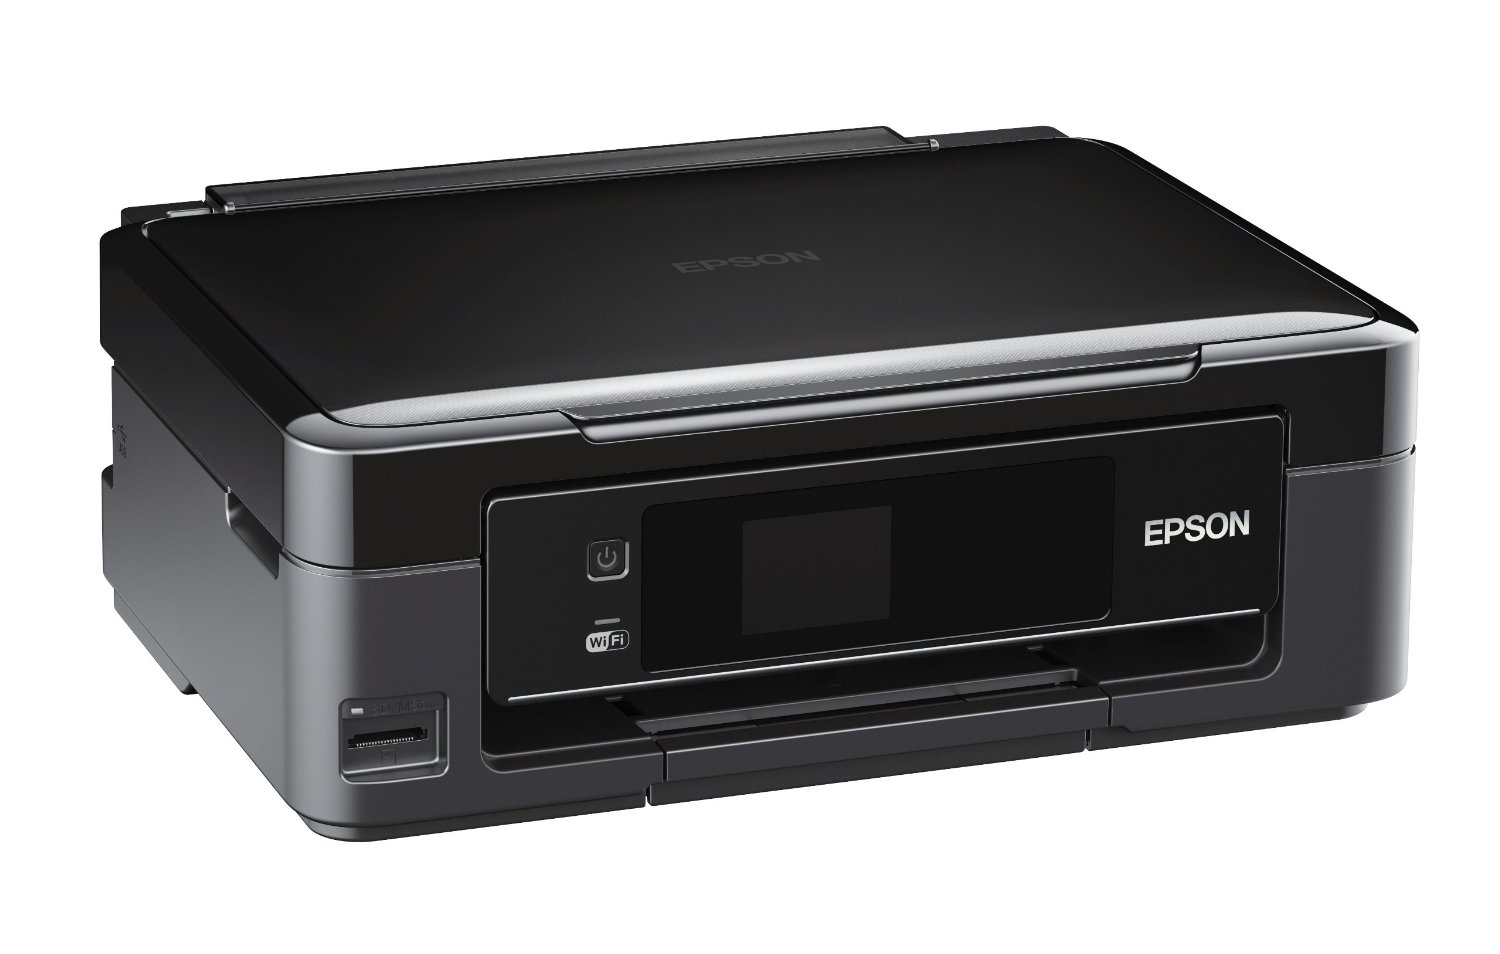 Epson XP Expression Home XP401 (BR) NEW Printer Reset